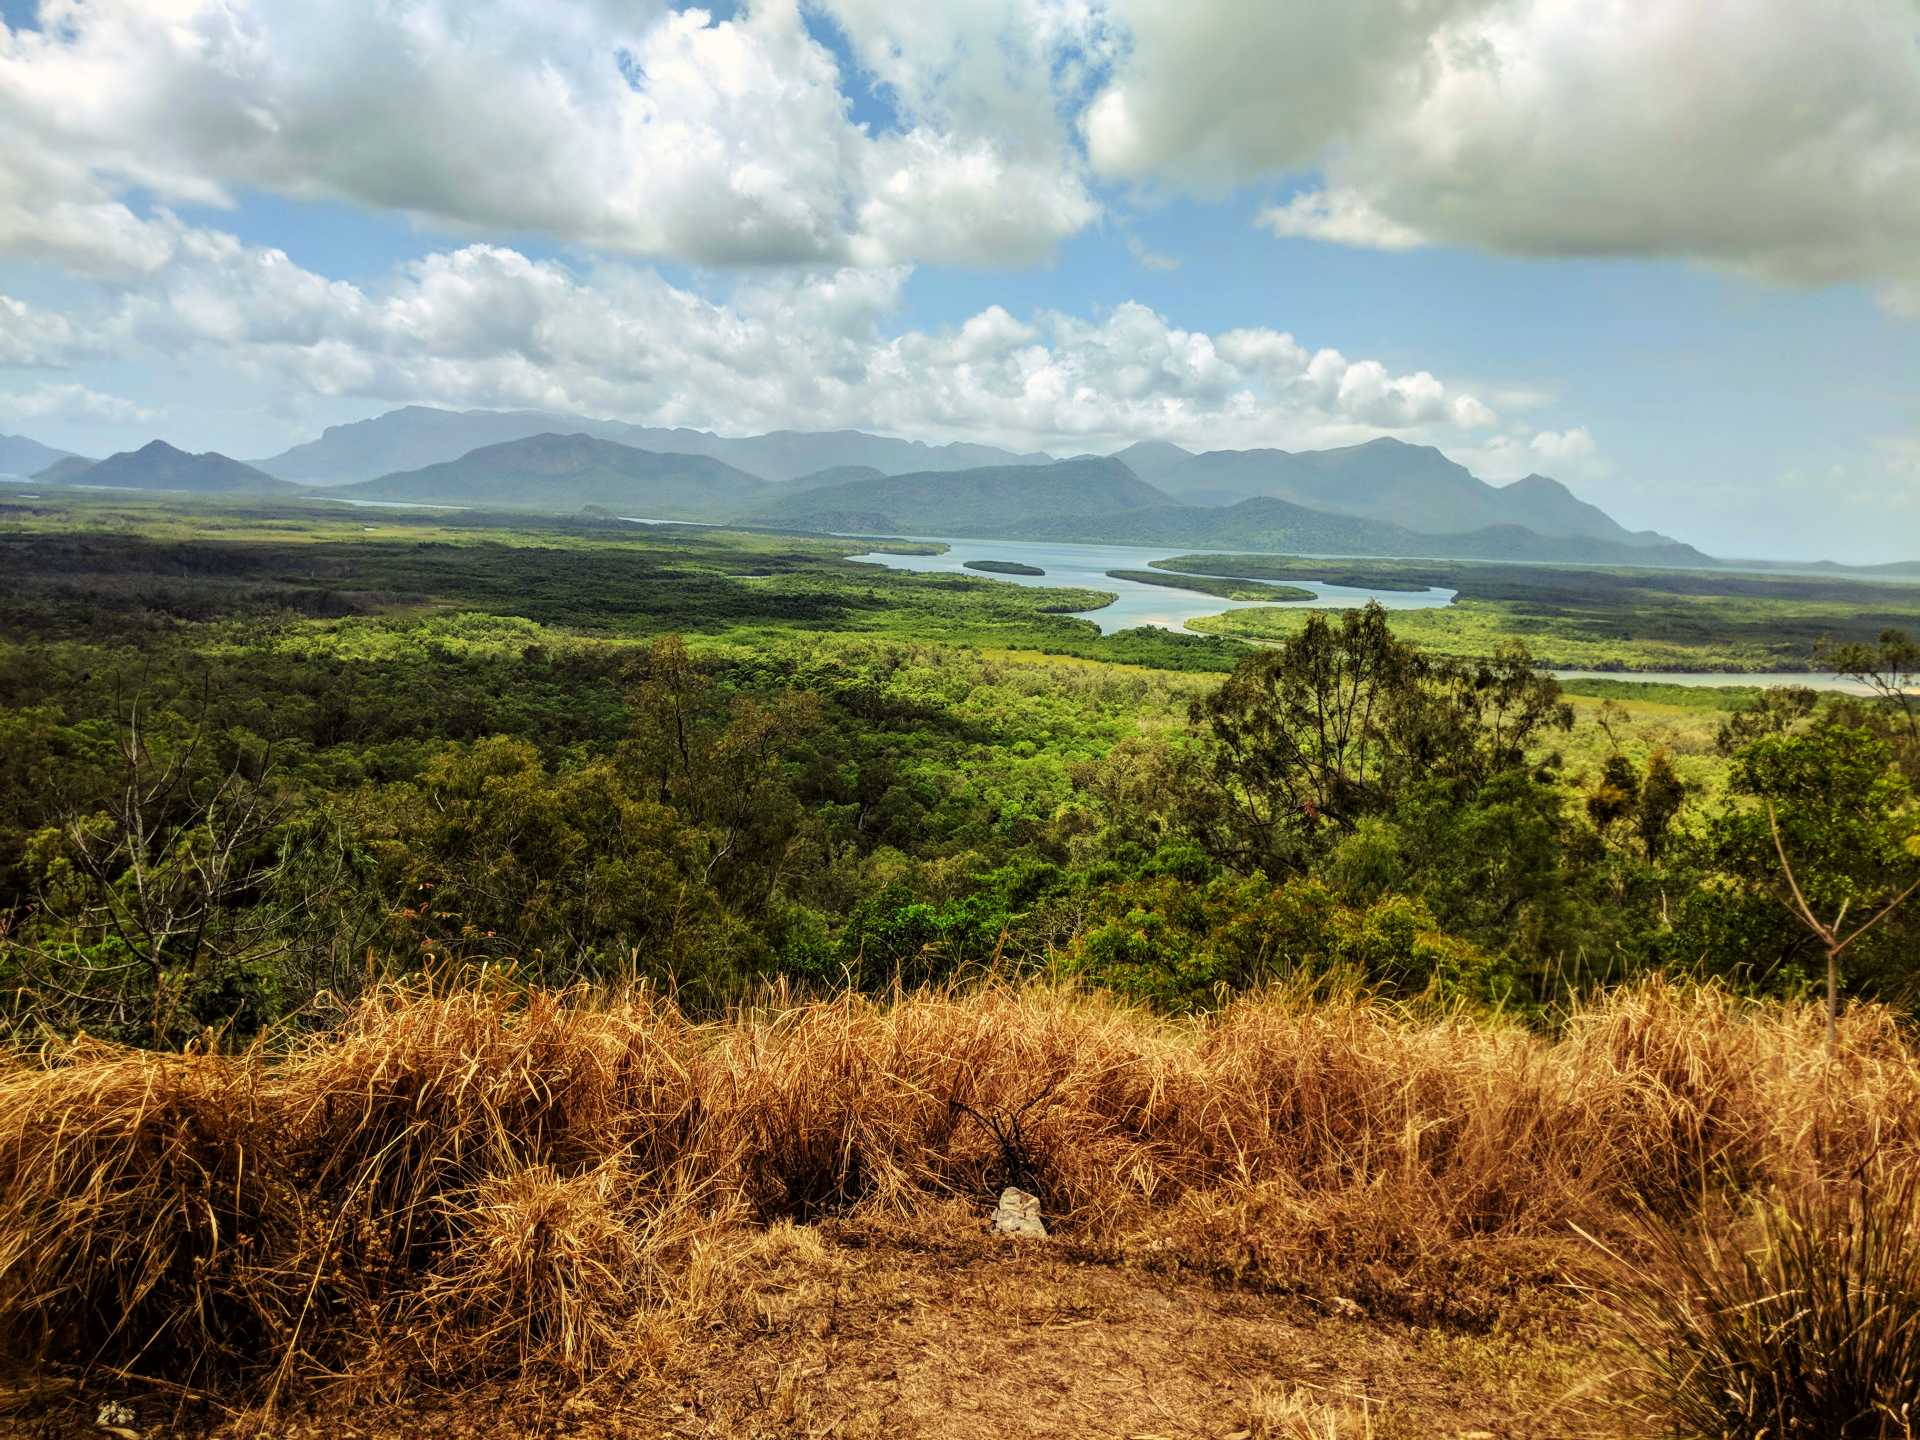 View from Lucinda - across Hinchinbrook Island